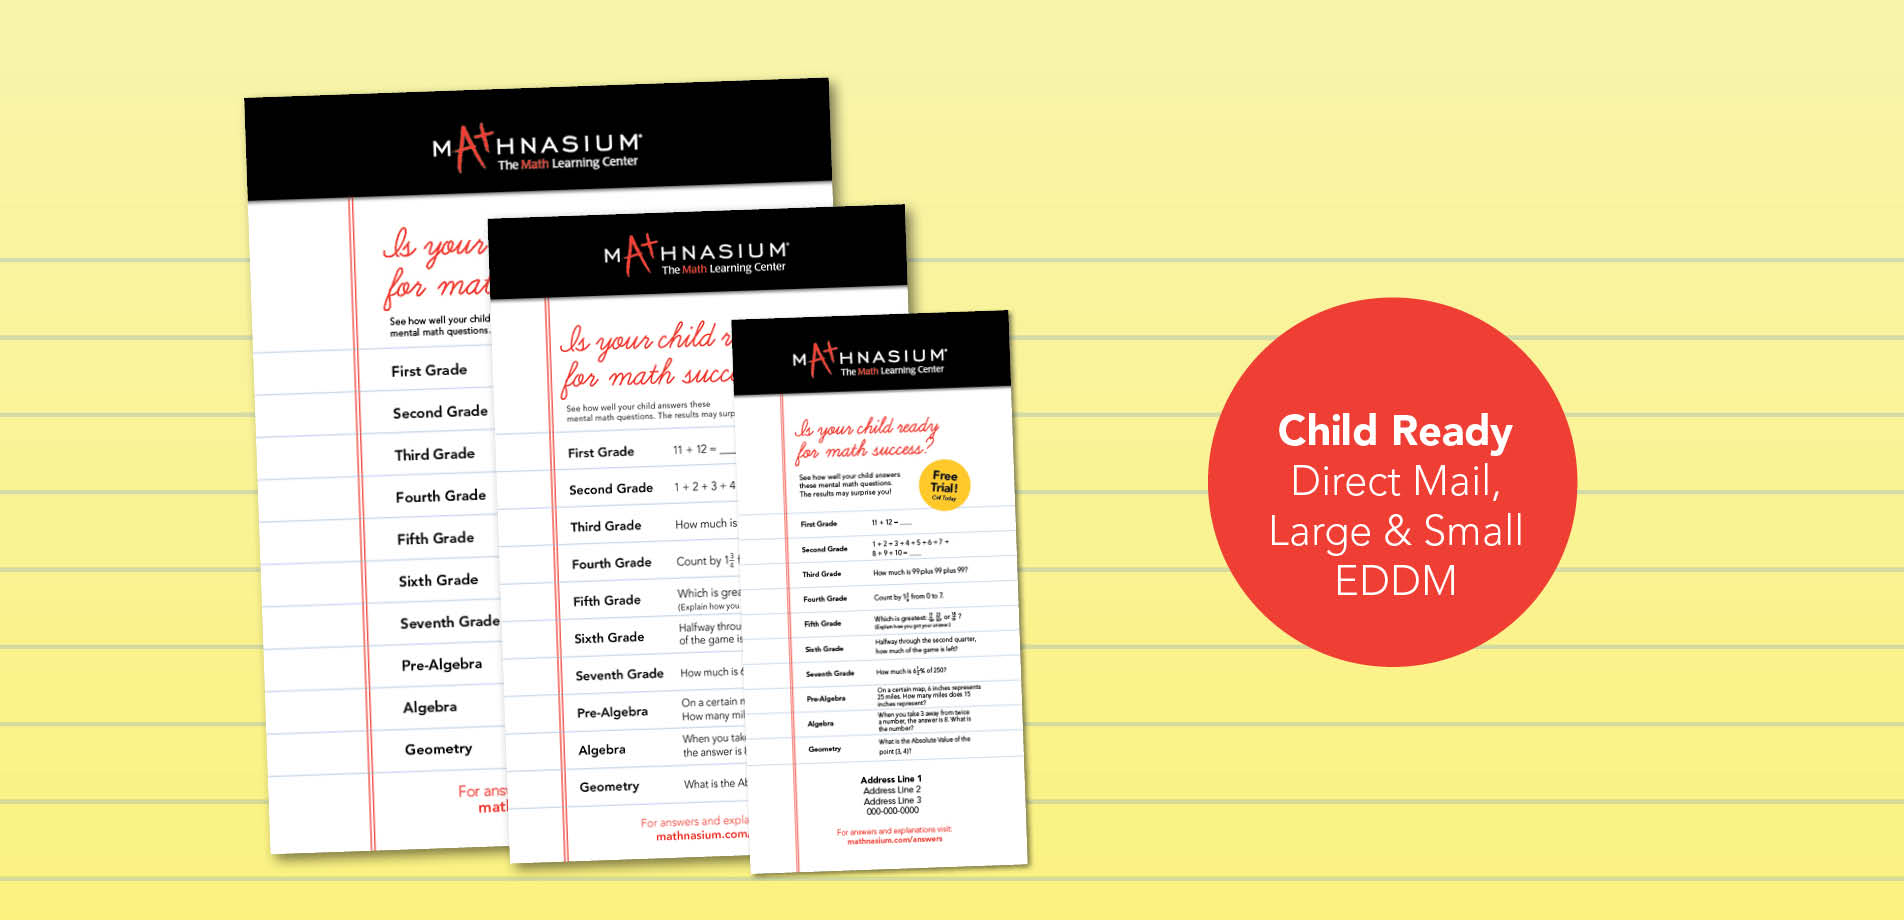 Sample-Email-Child-Ready-Direct-Mail-EDDM-2016